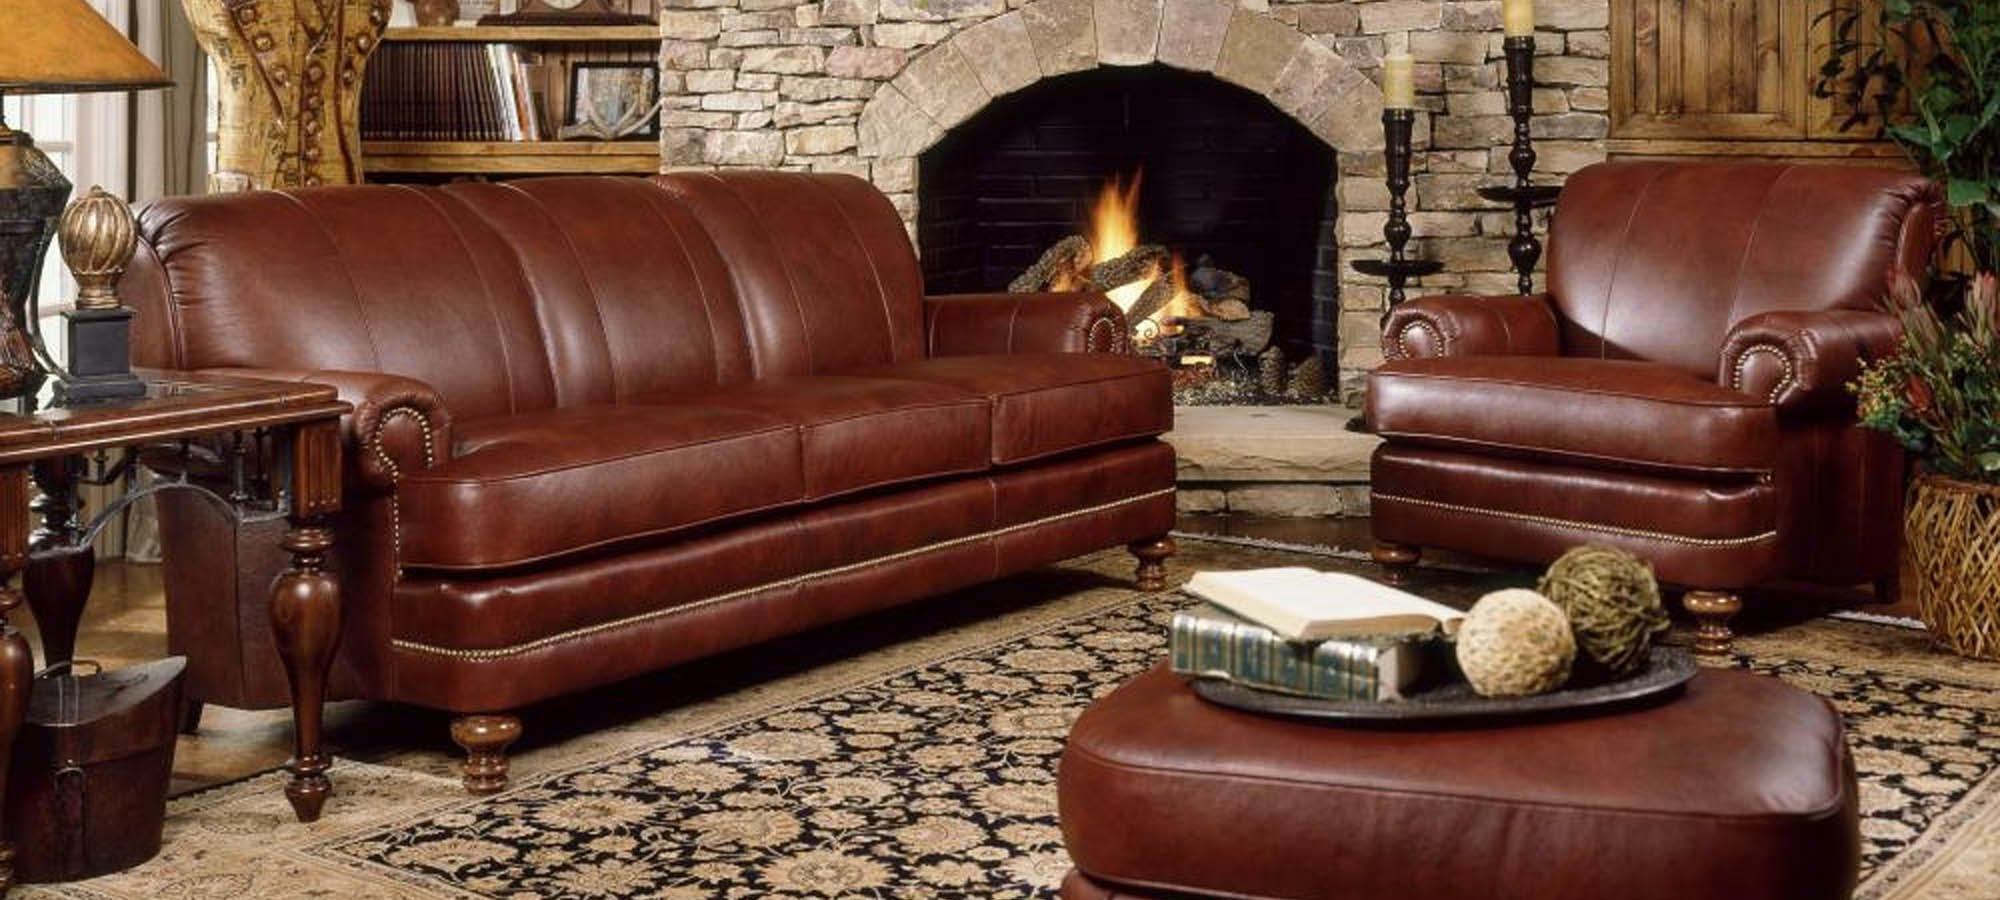 Cheap Furniture Dayton Ohio Cheap Furniture Dayton Ohio Cheap Furniture Stores In Nj Bedroom